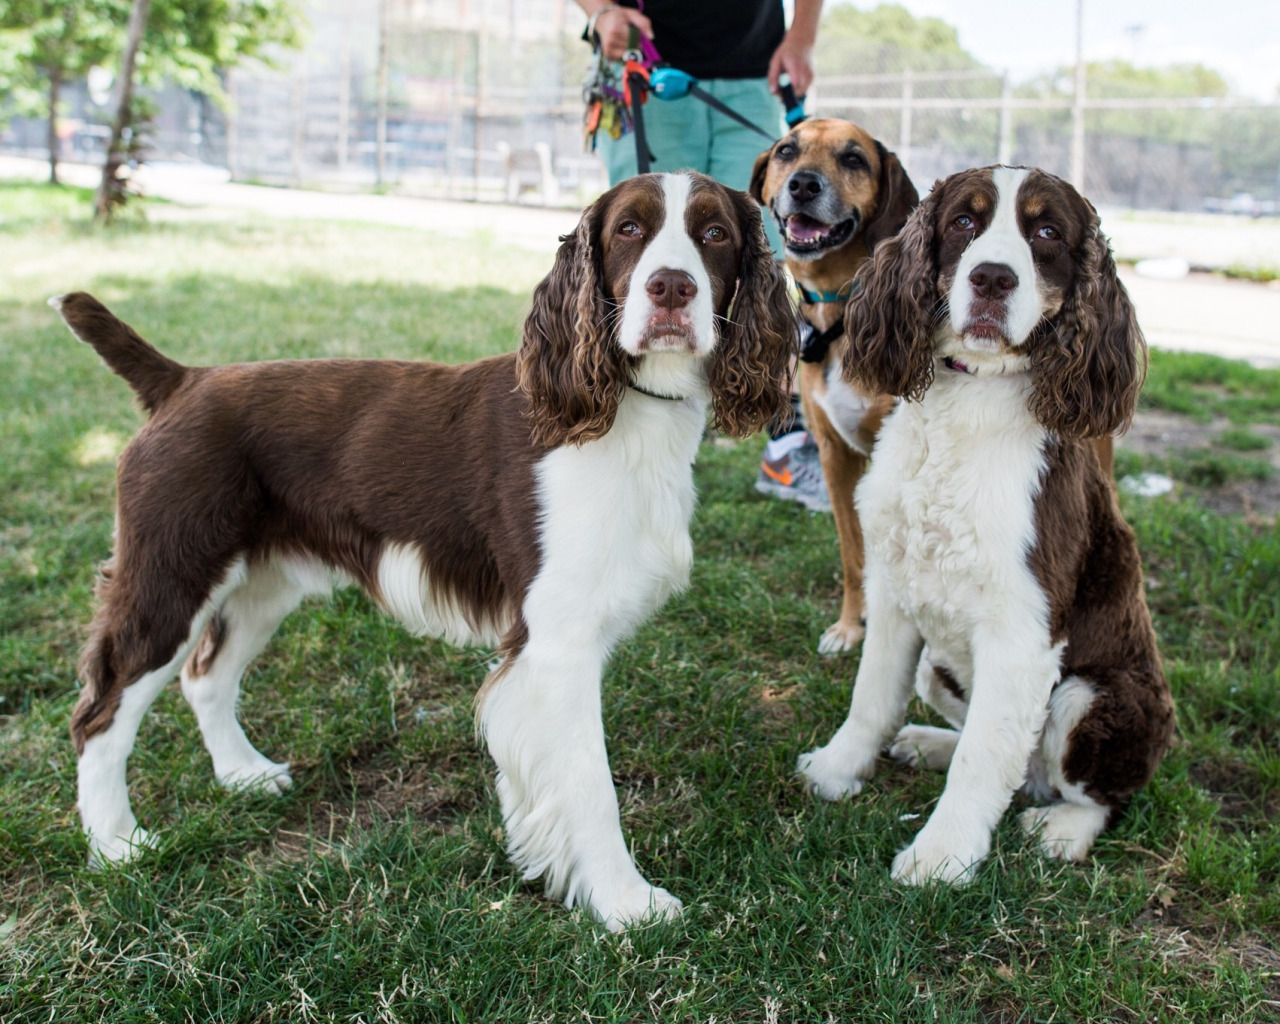 Jul 14 2016 Hudson Hudson Plum English Springer Spaniels Mix 5 Y O Brooklyn Ny English Springer Spaniel English Spaniel Welsh Springer Spaniel